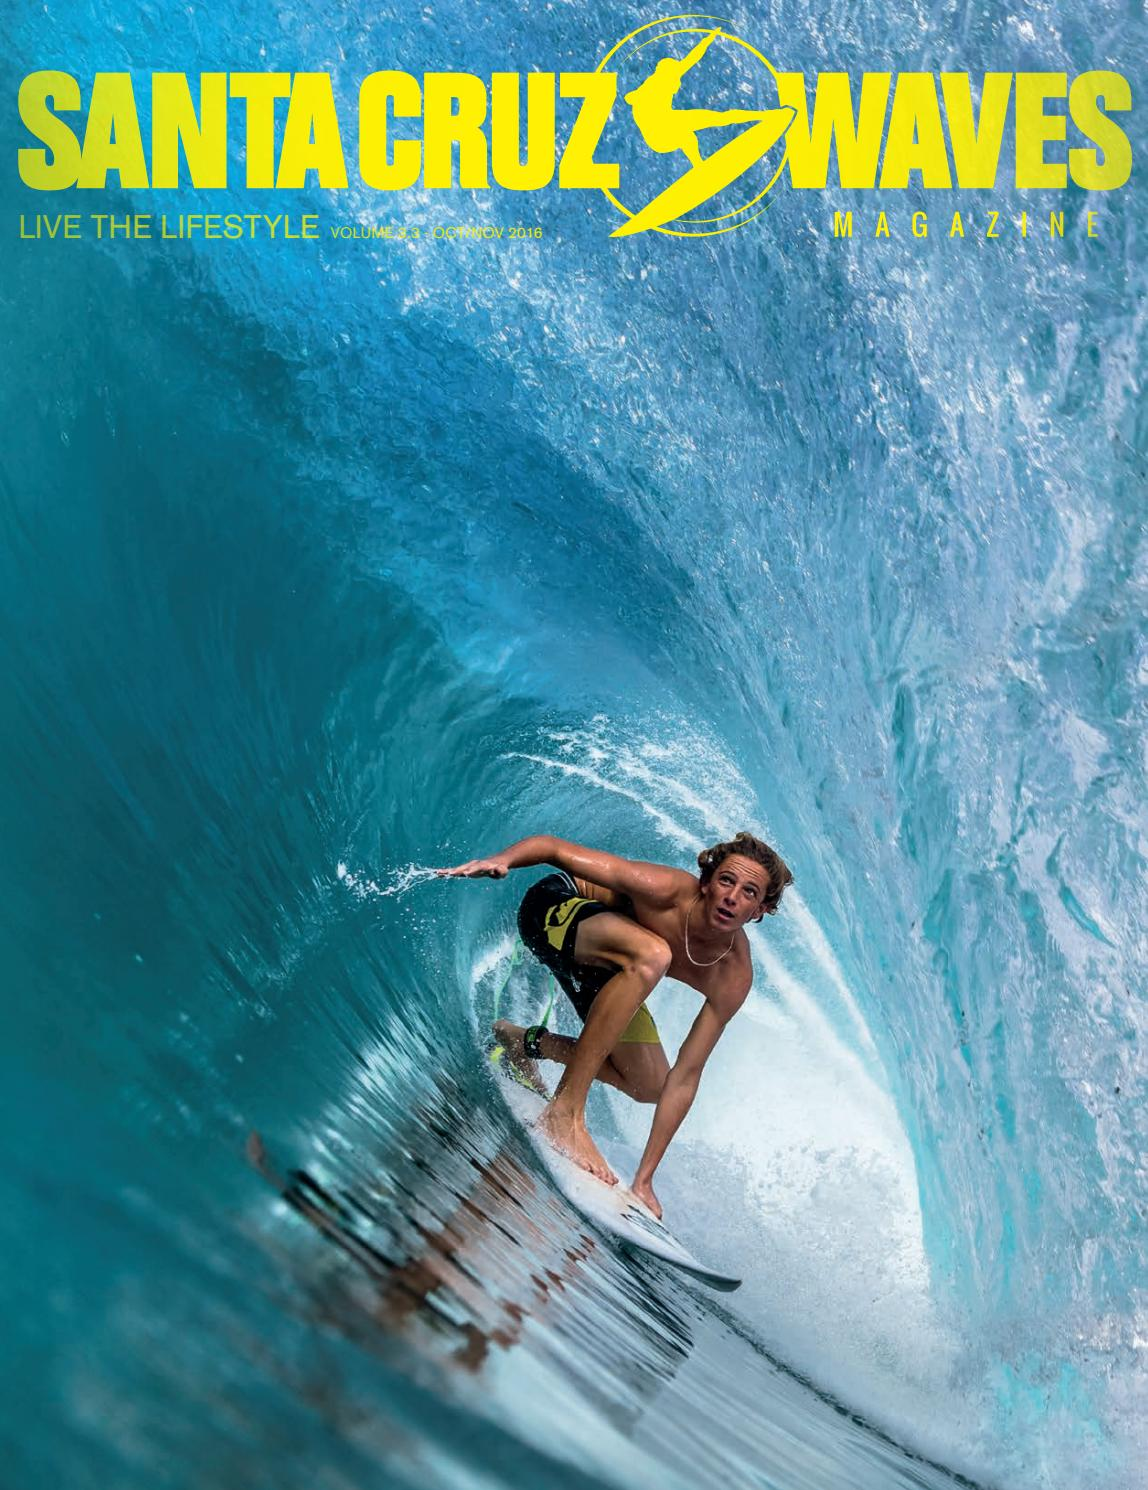 e029478c0c2a Santa Cruz Waves Oct Nov 2016 Issue 3.3 by Santa Cruz Waves - issuu